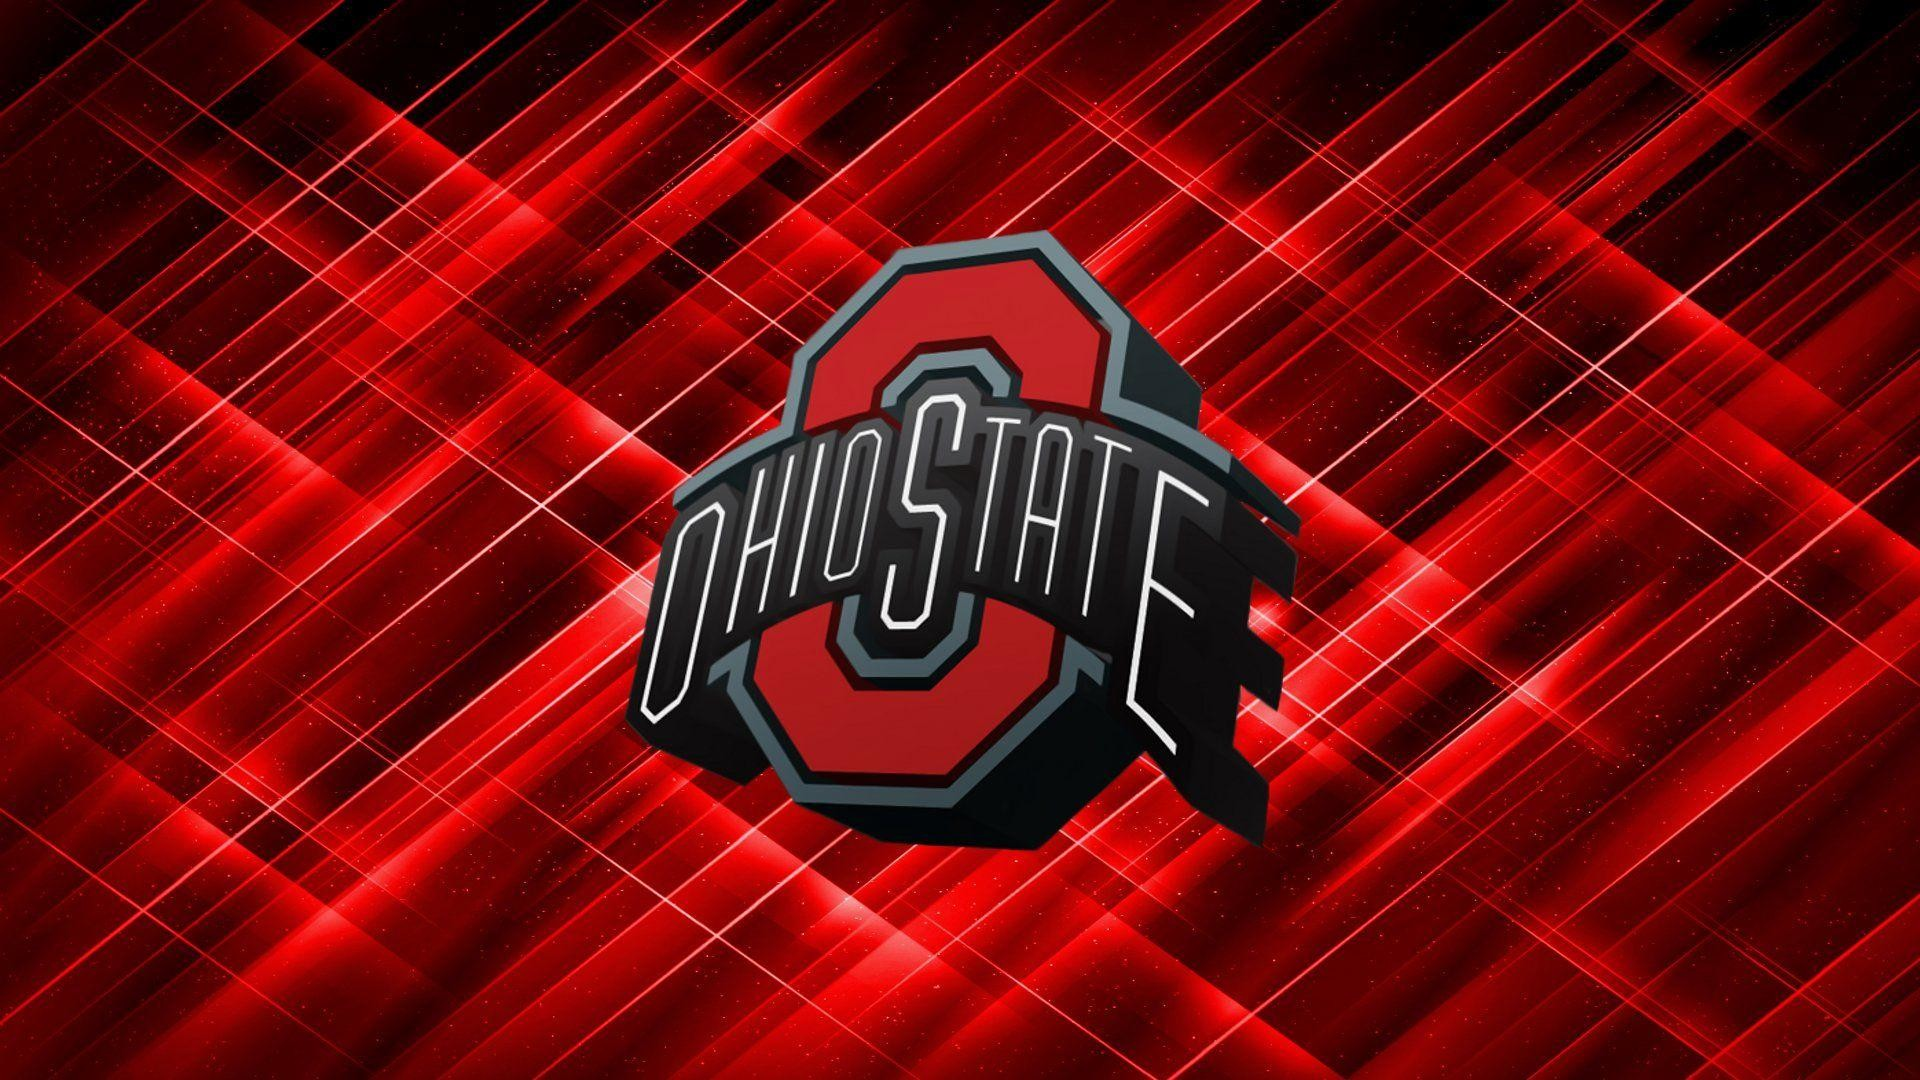 1920x1080 Ohio-State-Buckeyes-Football-Backgrounds-Download-wallpaper-wp2008627